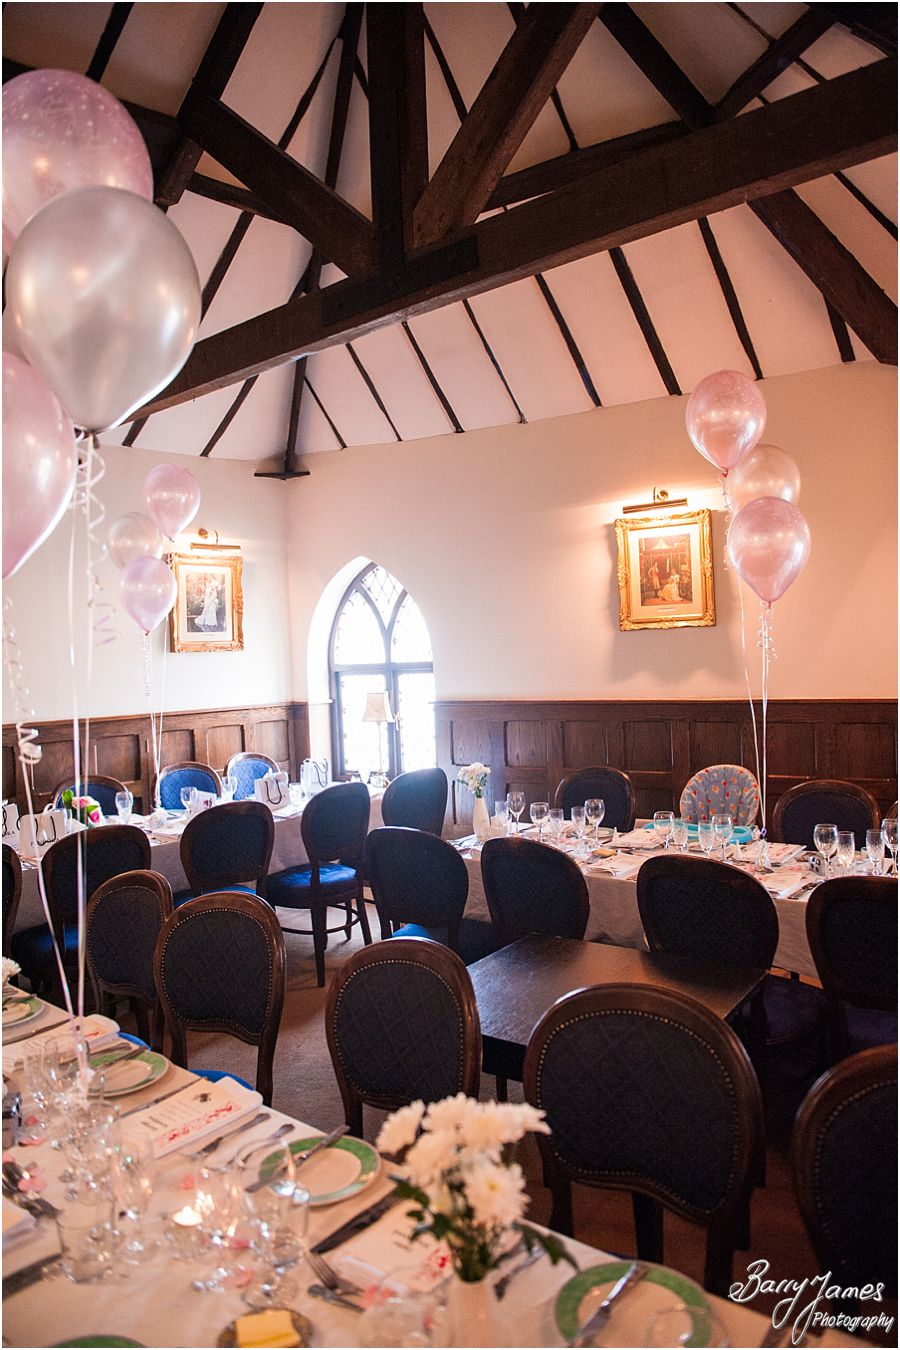 Wedding photos at Ye Olde Toll House in Willenhall by Contemporary Wedding Photographer Barry James